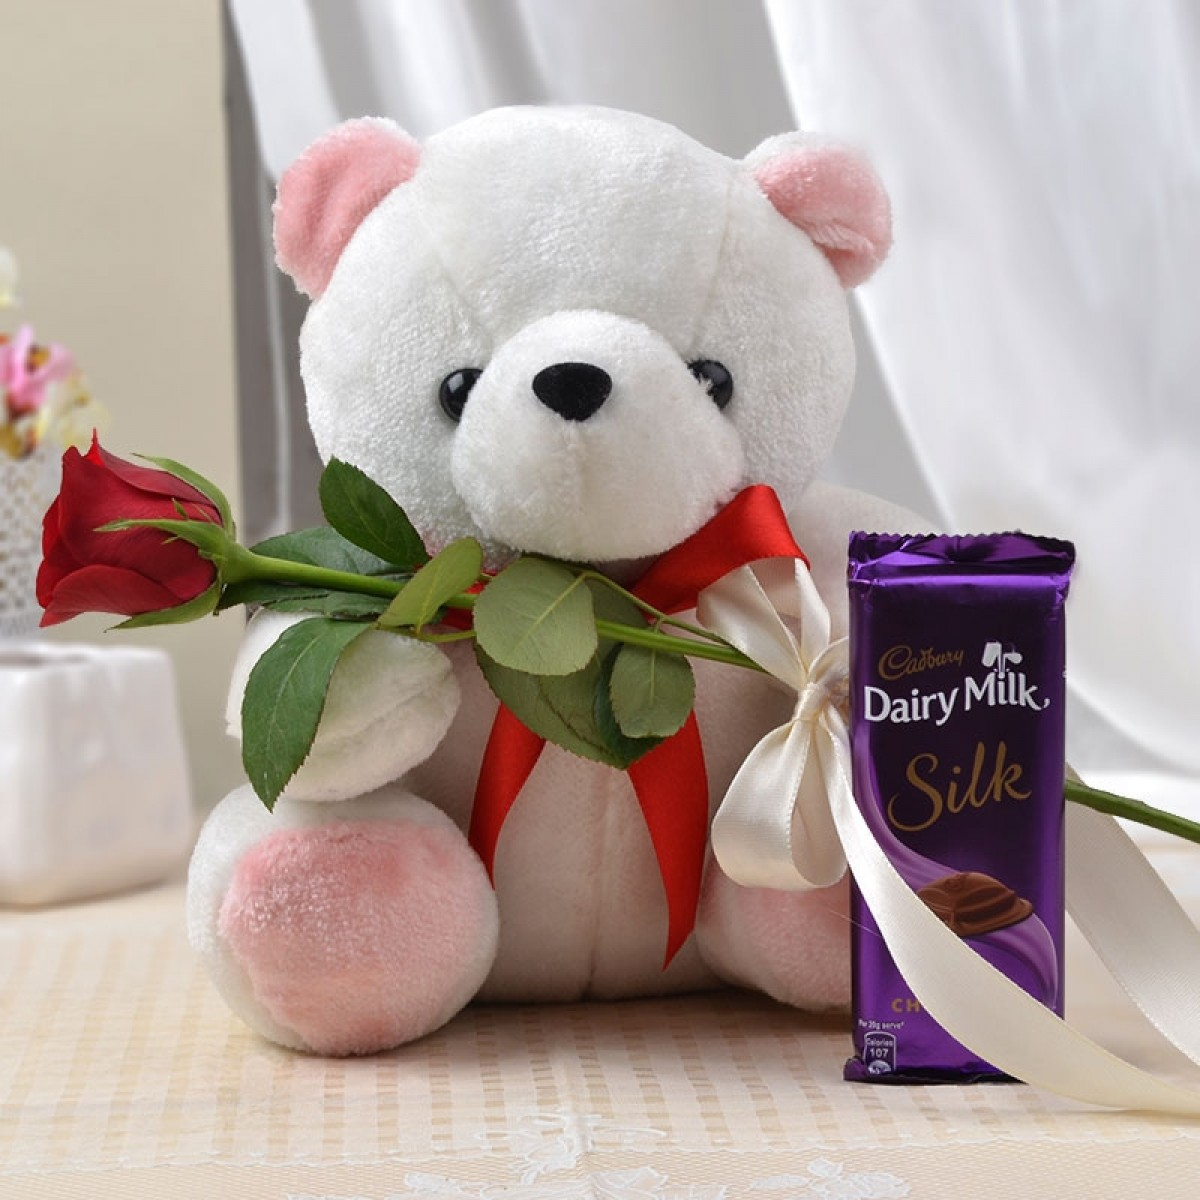 Cute Teddy Bear Image with Red Rose and Chocolate